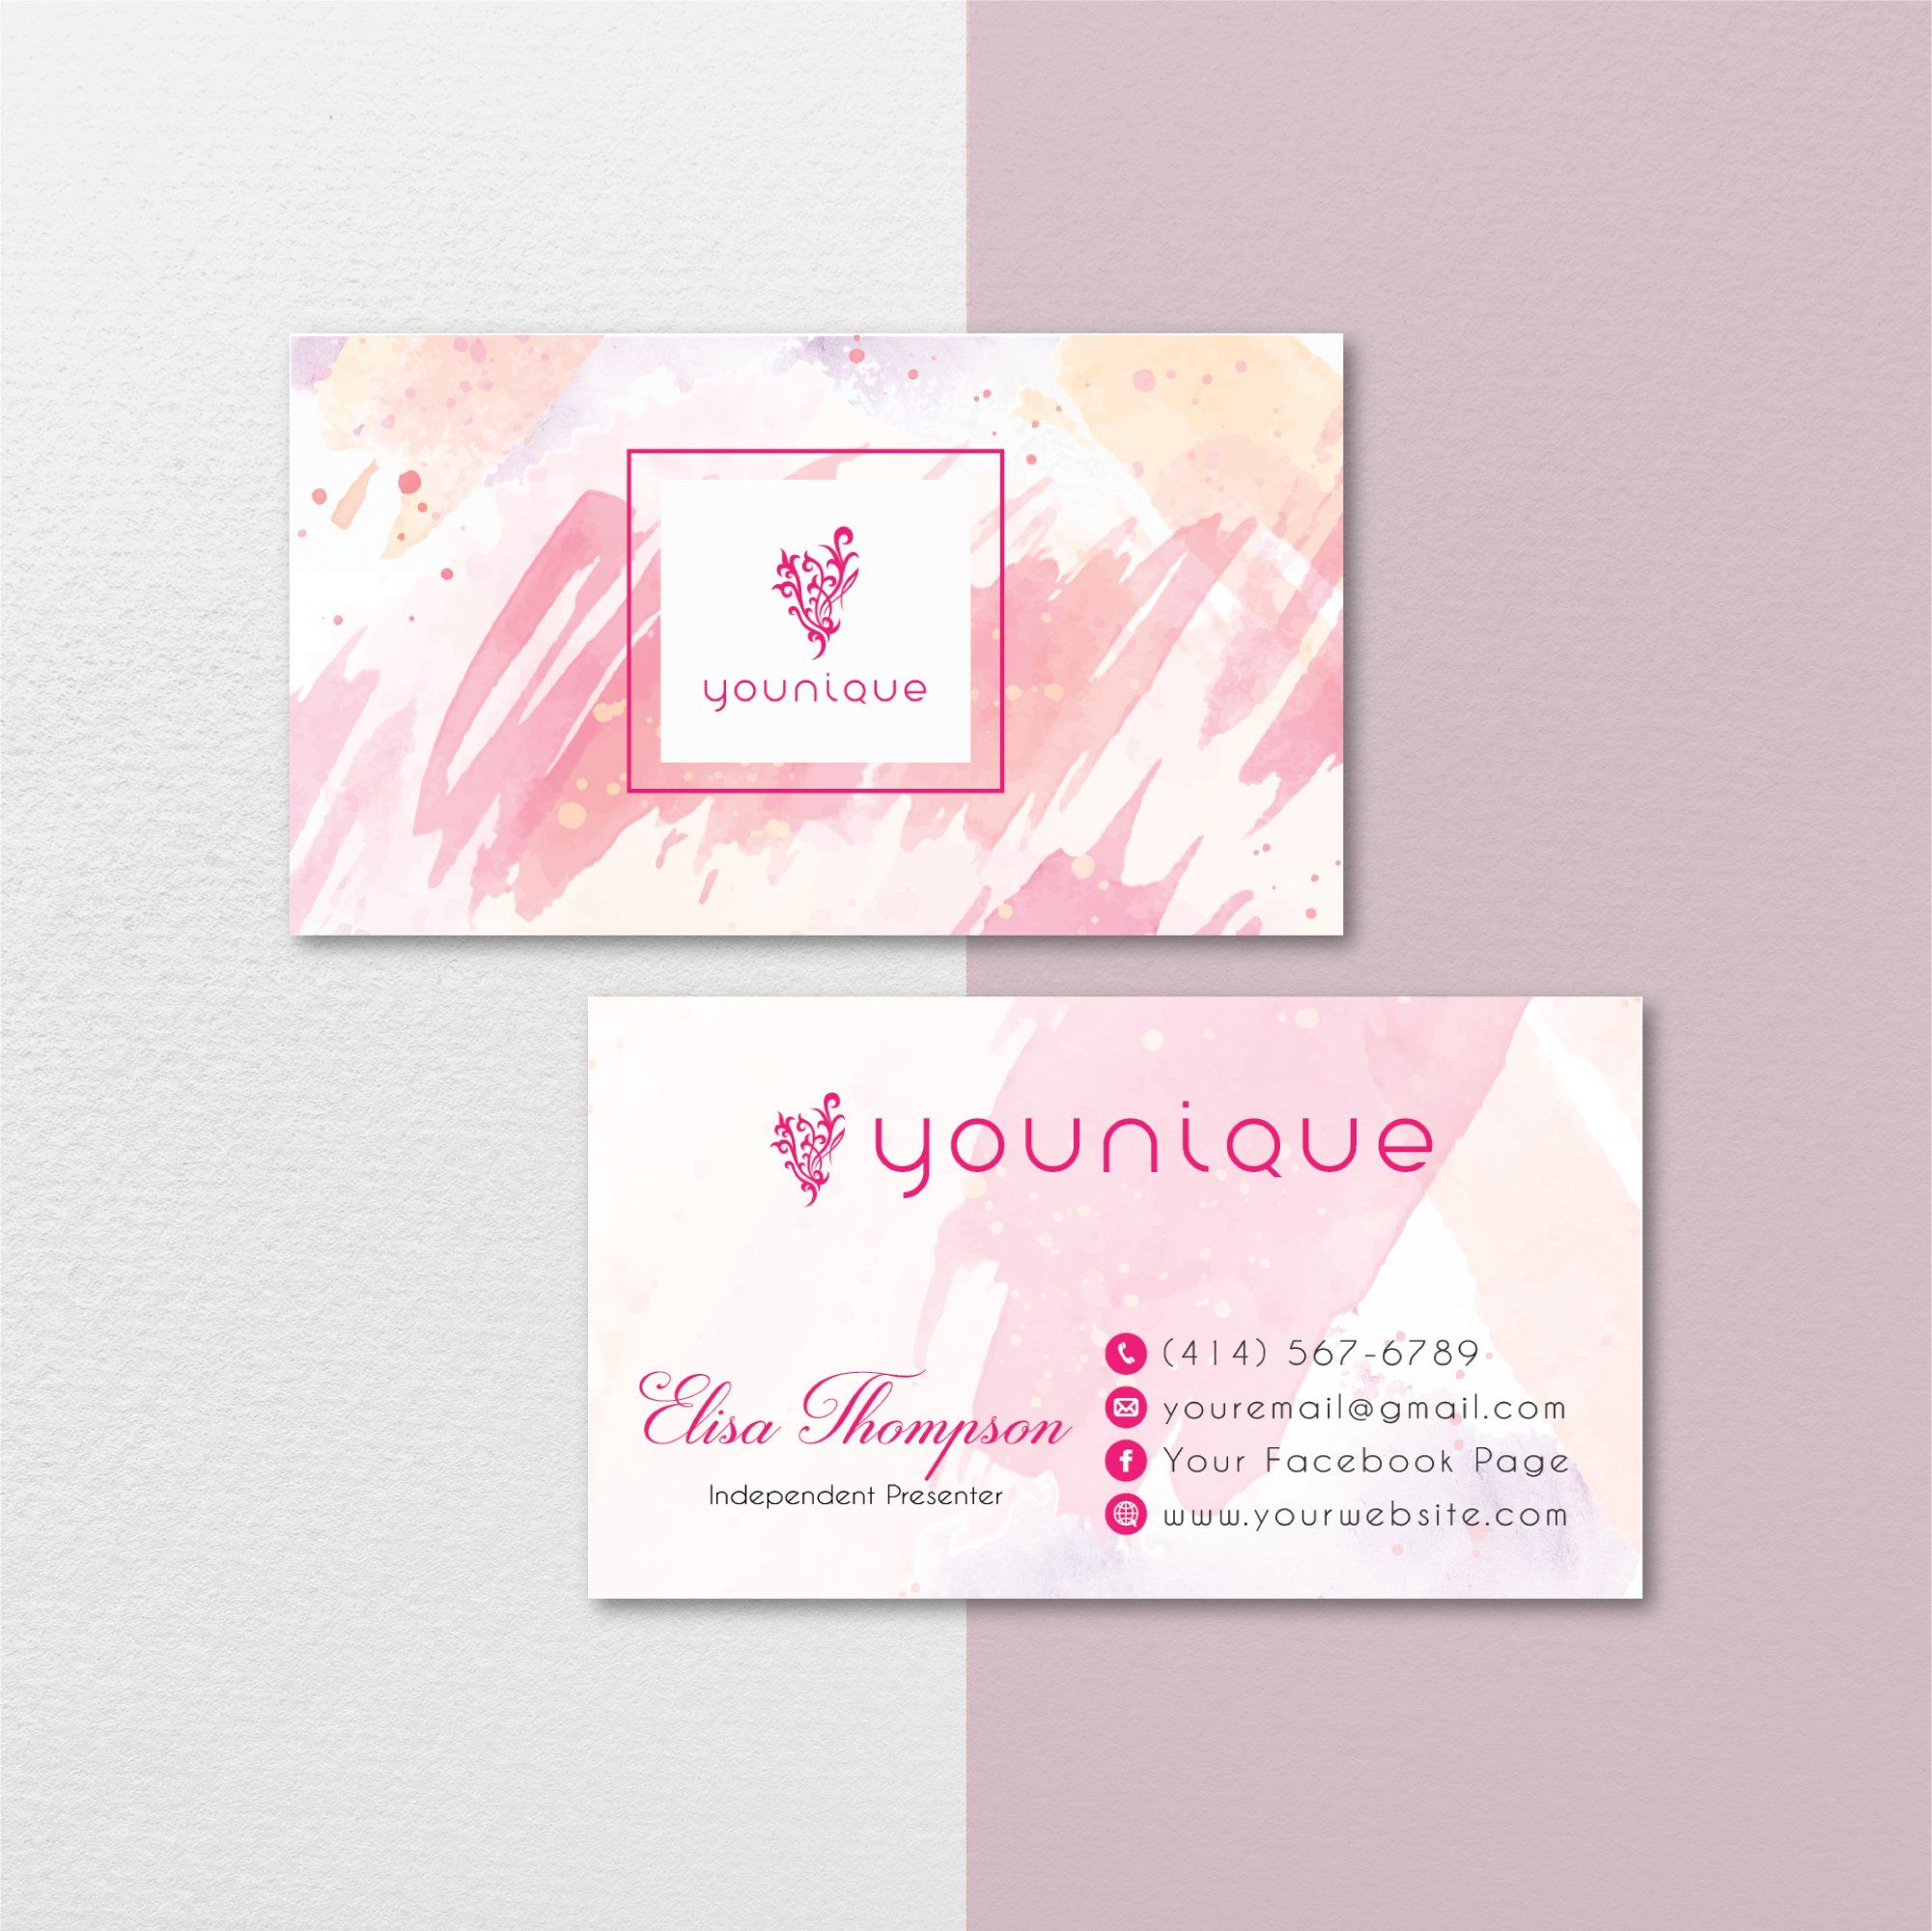 Watercolor Younique Business Card Personalized Younique Business Card Yq16 In 2021 Younique Business Cards Younique Business Custom Business Cards